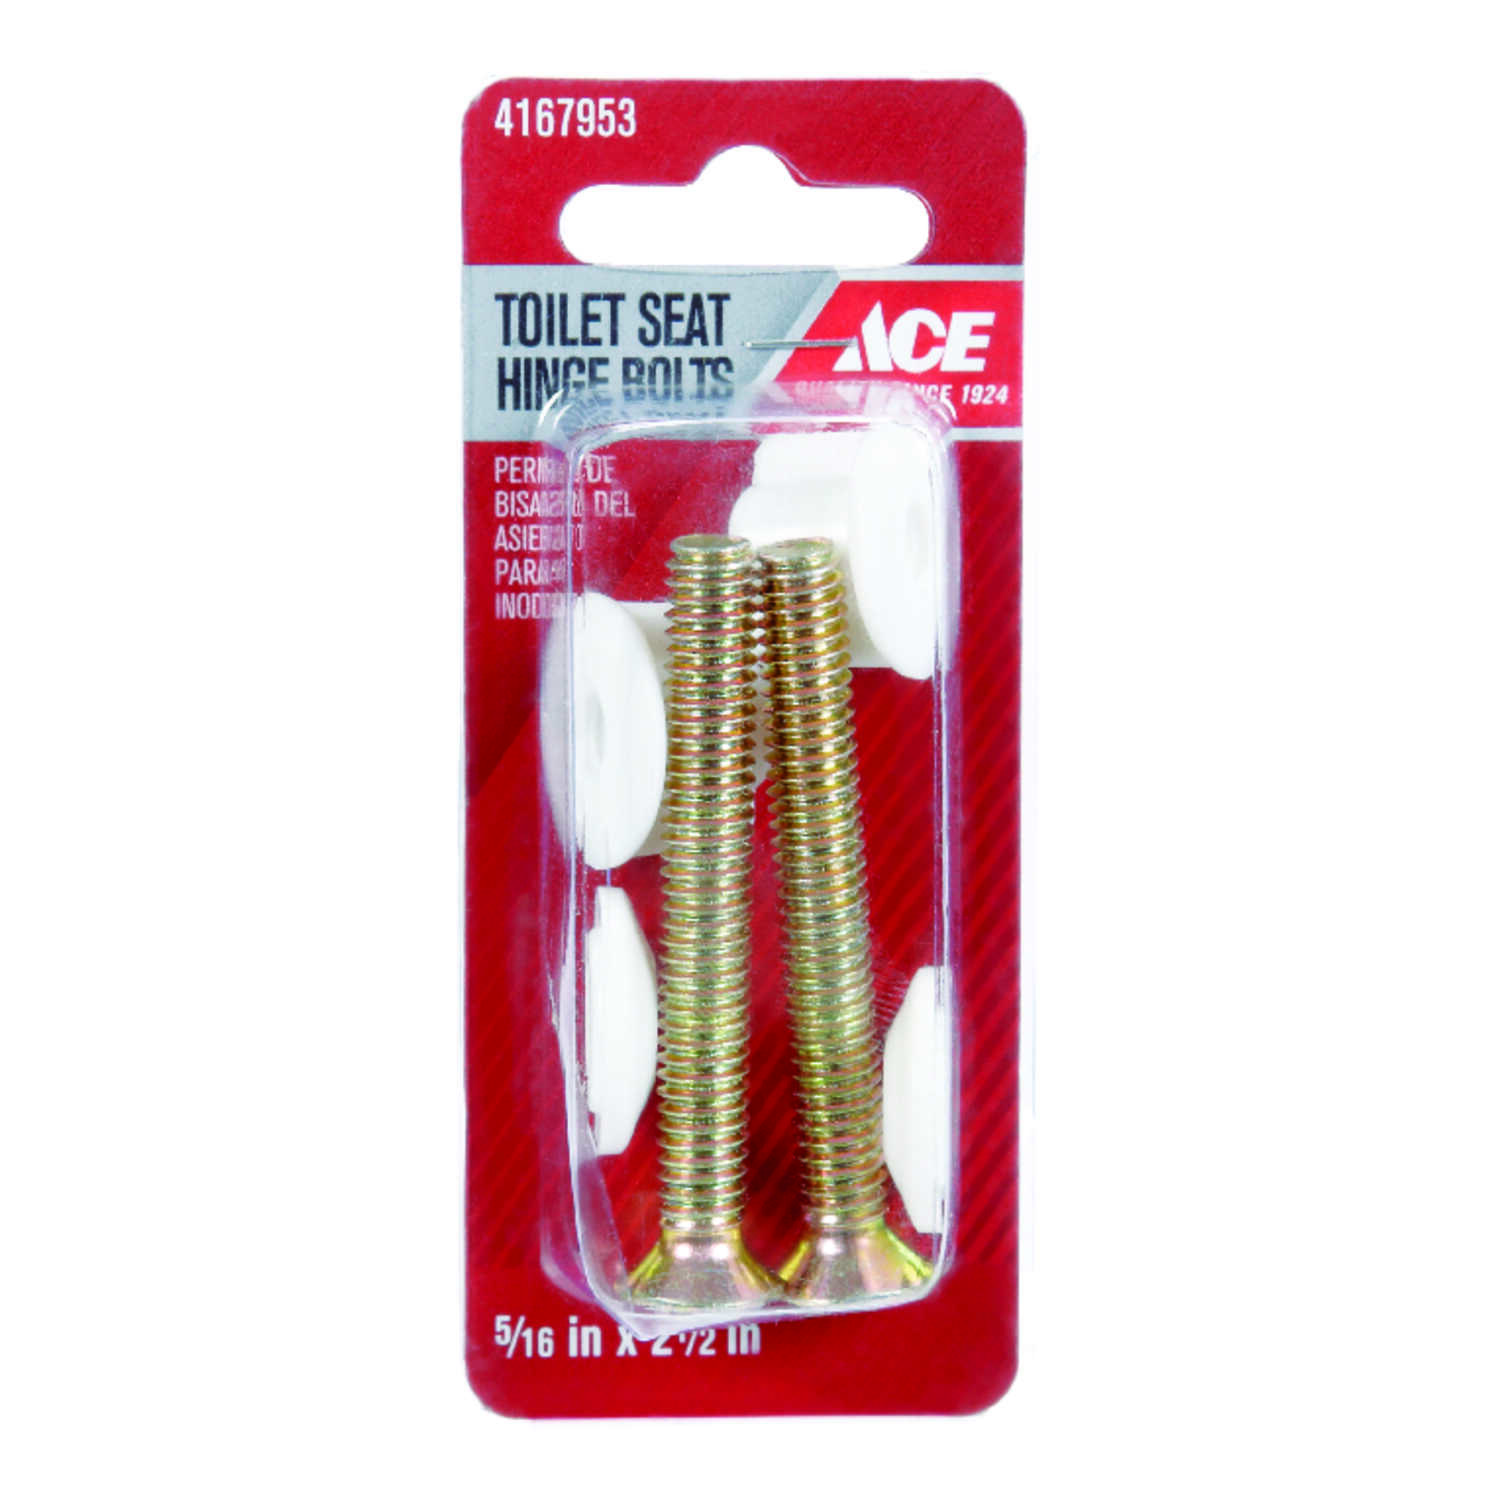 Ace Toilet Seat Hinge Bolts Plated Brass Ace Hardware